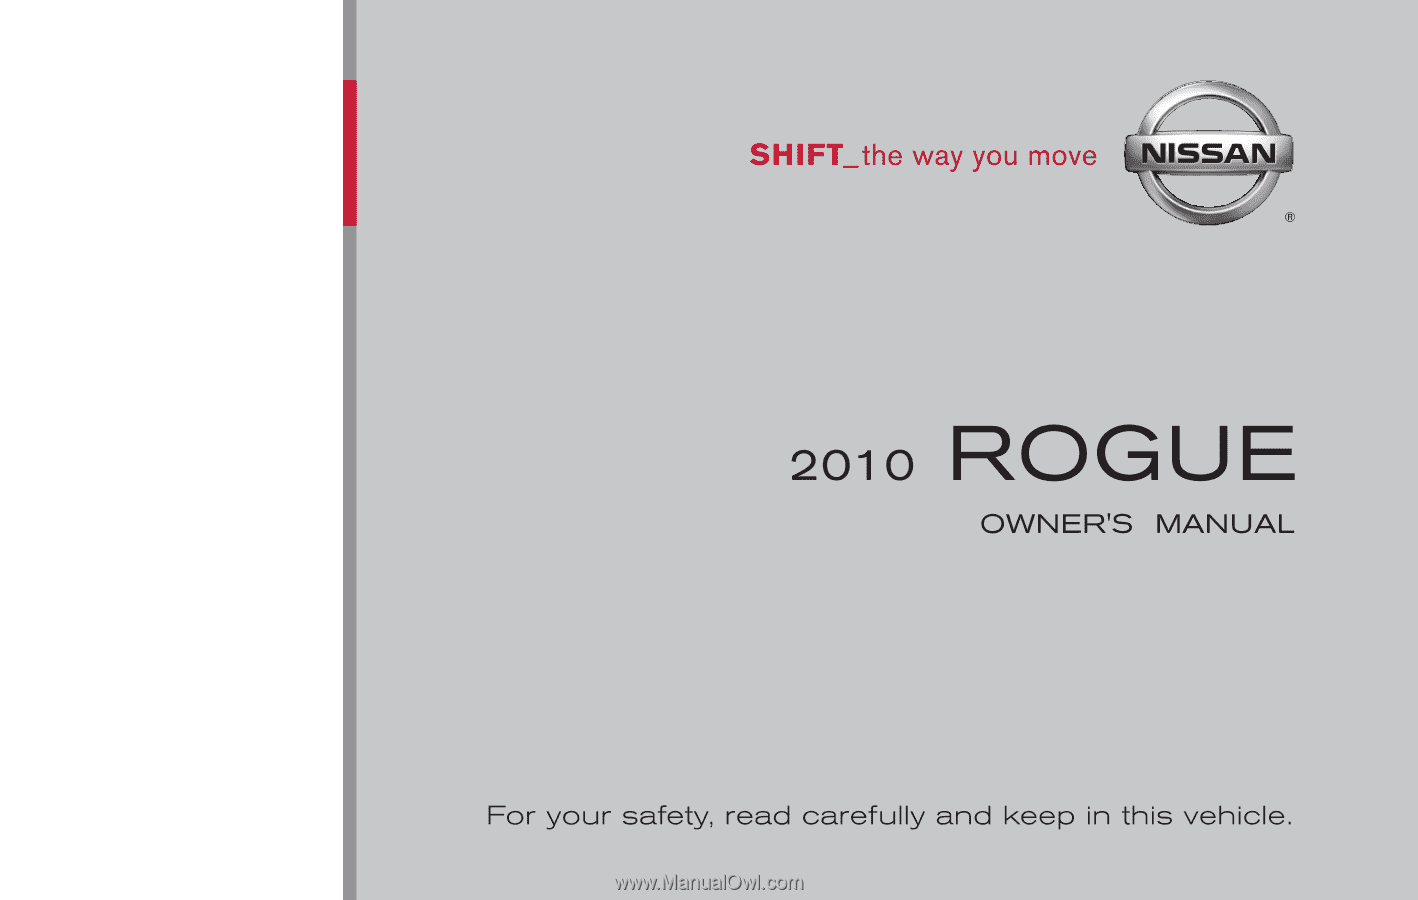 Nissan Rogue Owners Manual: Rear window wiper and washer switch